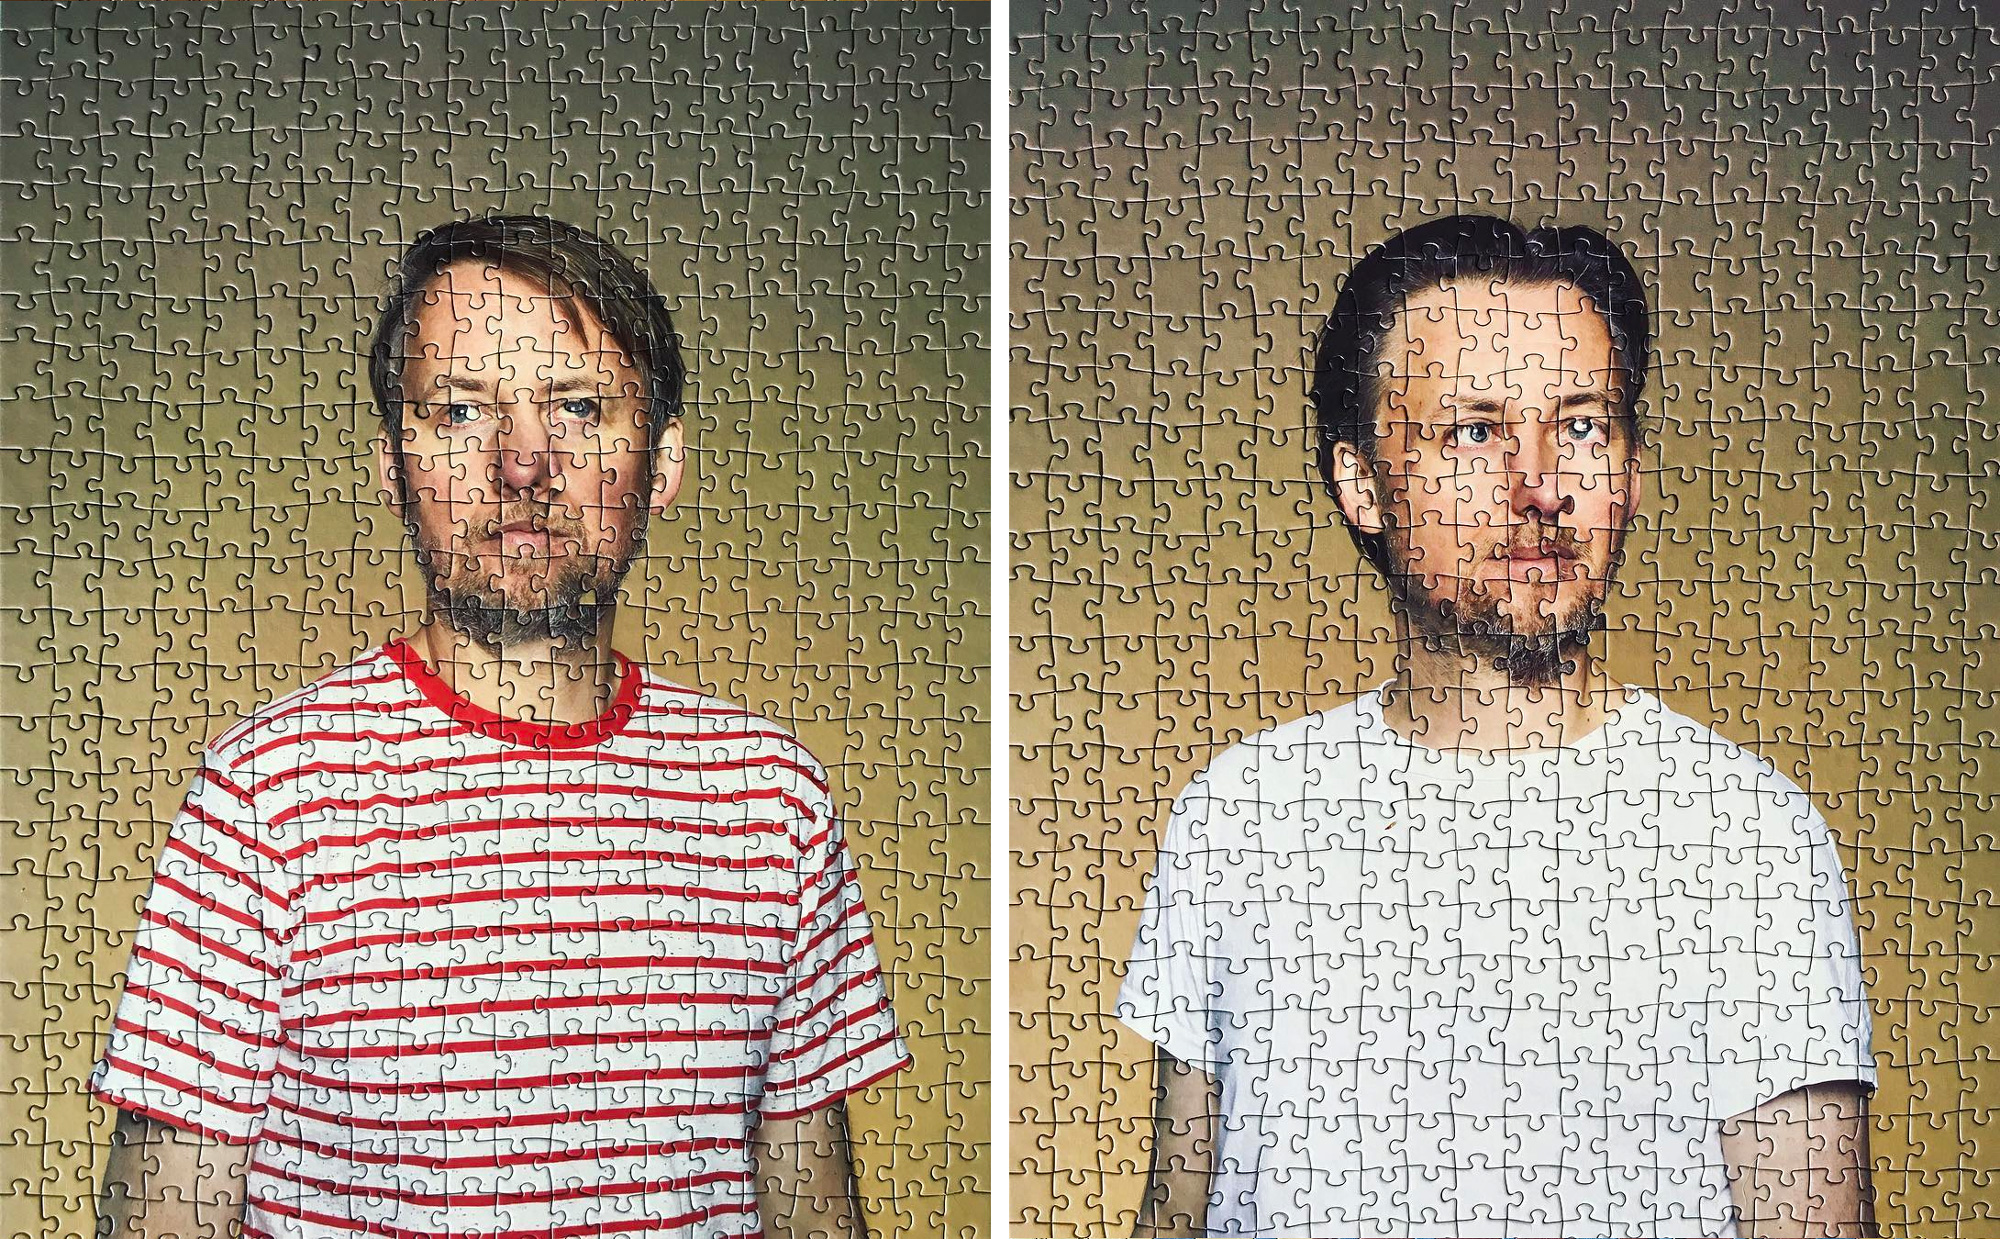 Puzzling Portraits of Identical Twins by Photographer Alma Haser